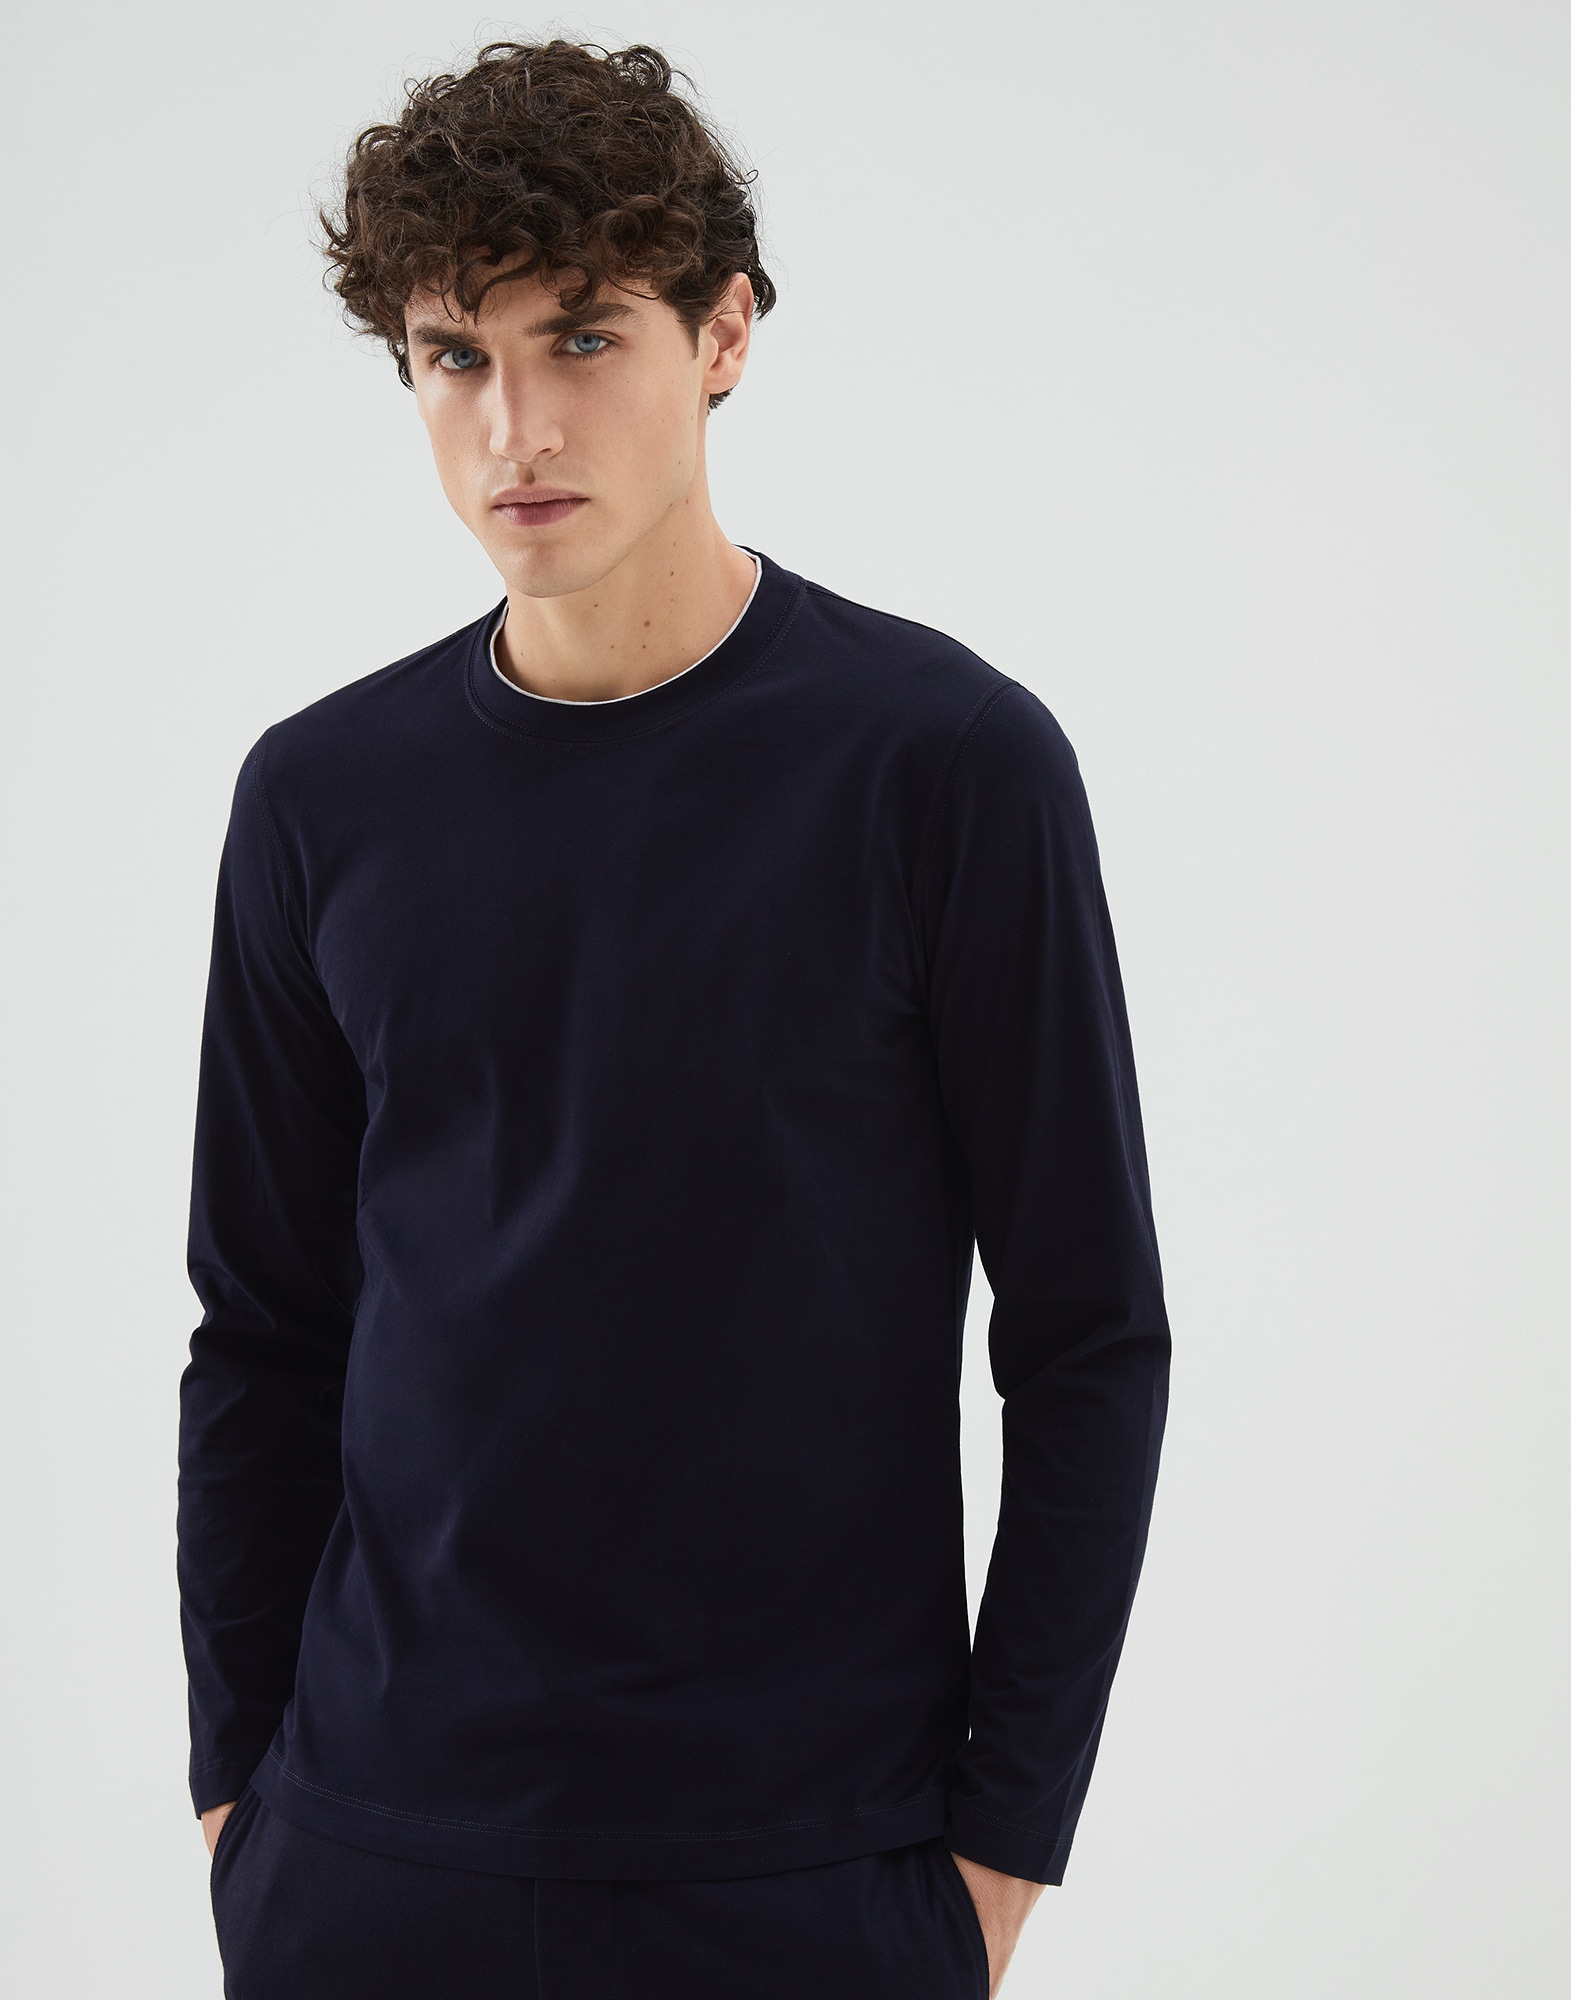 Long Sleeve T-Shirt Navy Blue Man 1 - Brunello Cucinelli